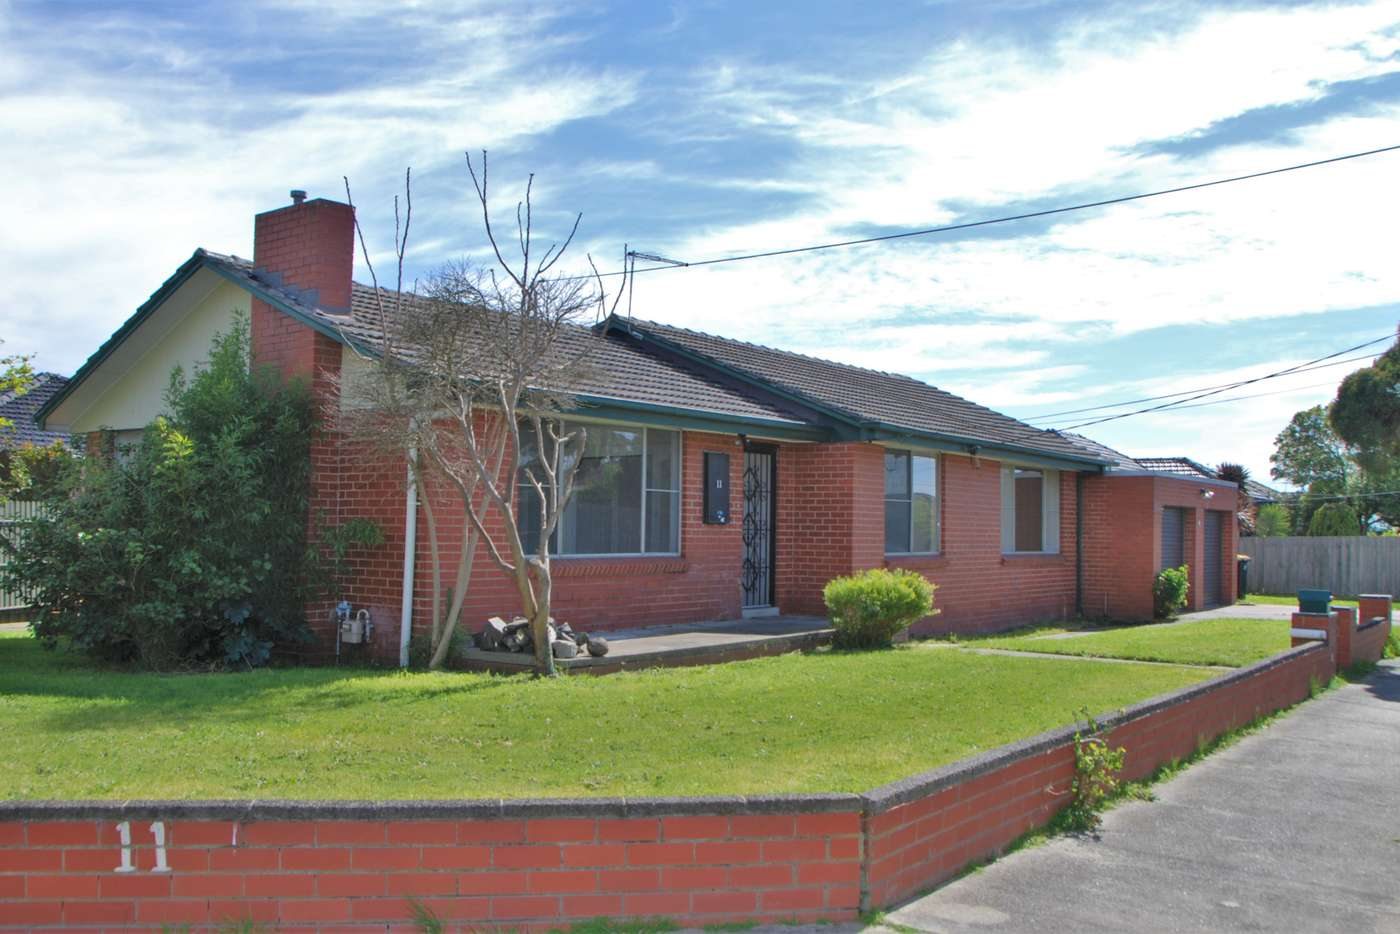 Main view of Homely house listing, 11 Mollison Street, Dandenong North VIC 3175